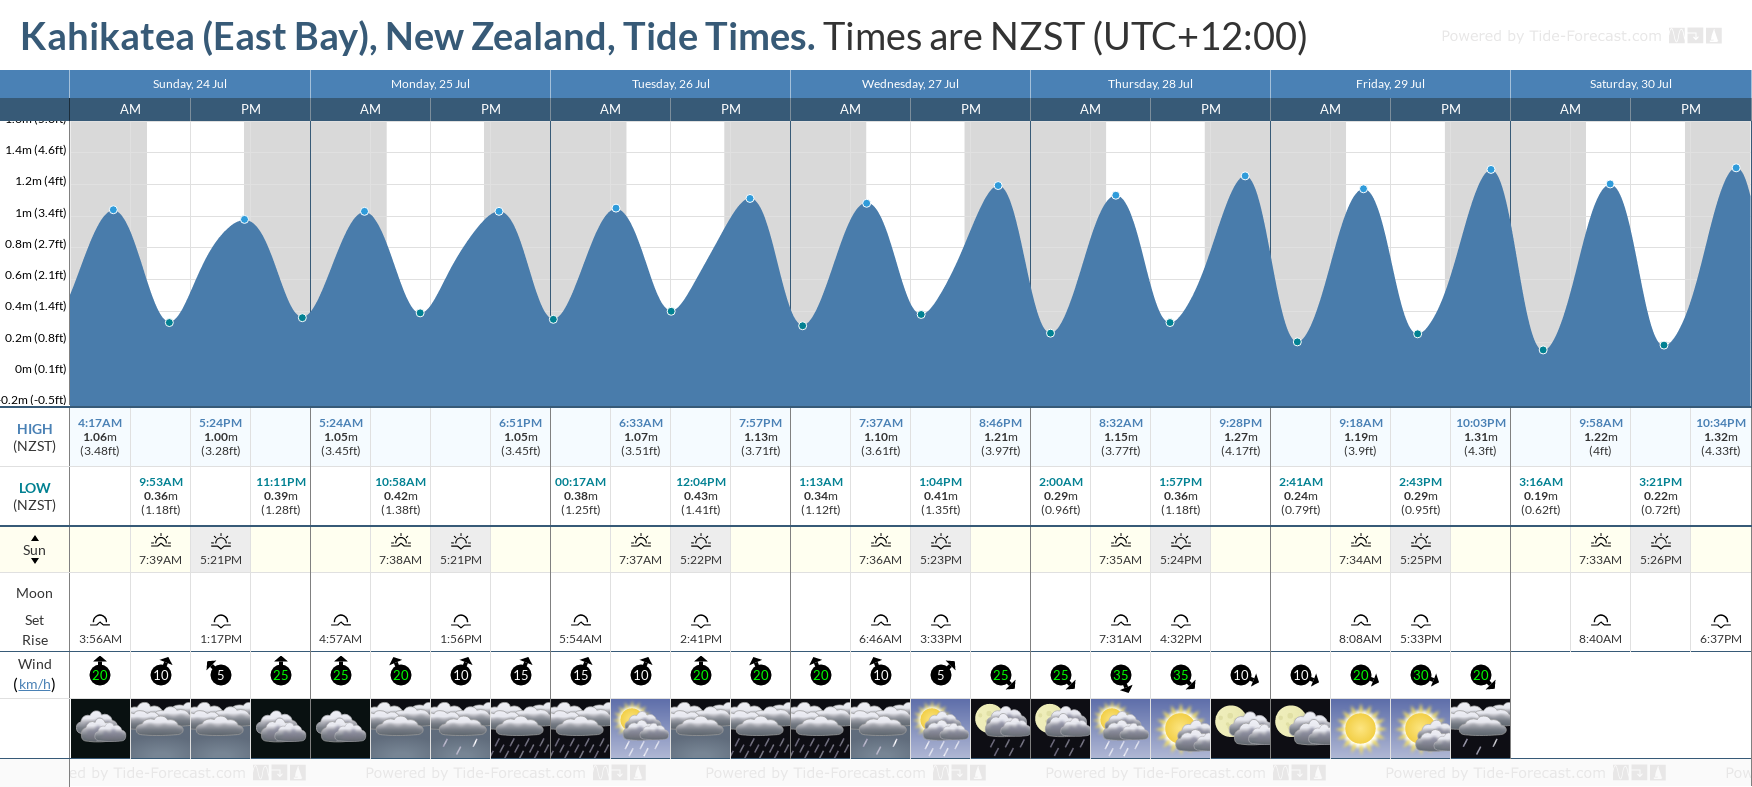 Kahikatea (East Bay), New Zealand Tide Chart including high and low tide tide times for the next 7 days